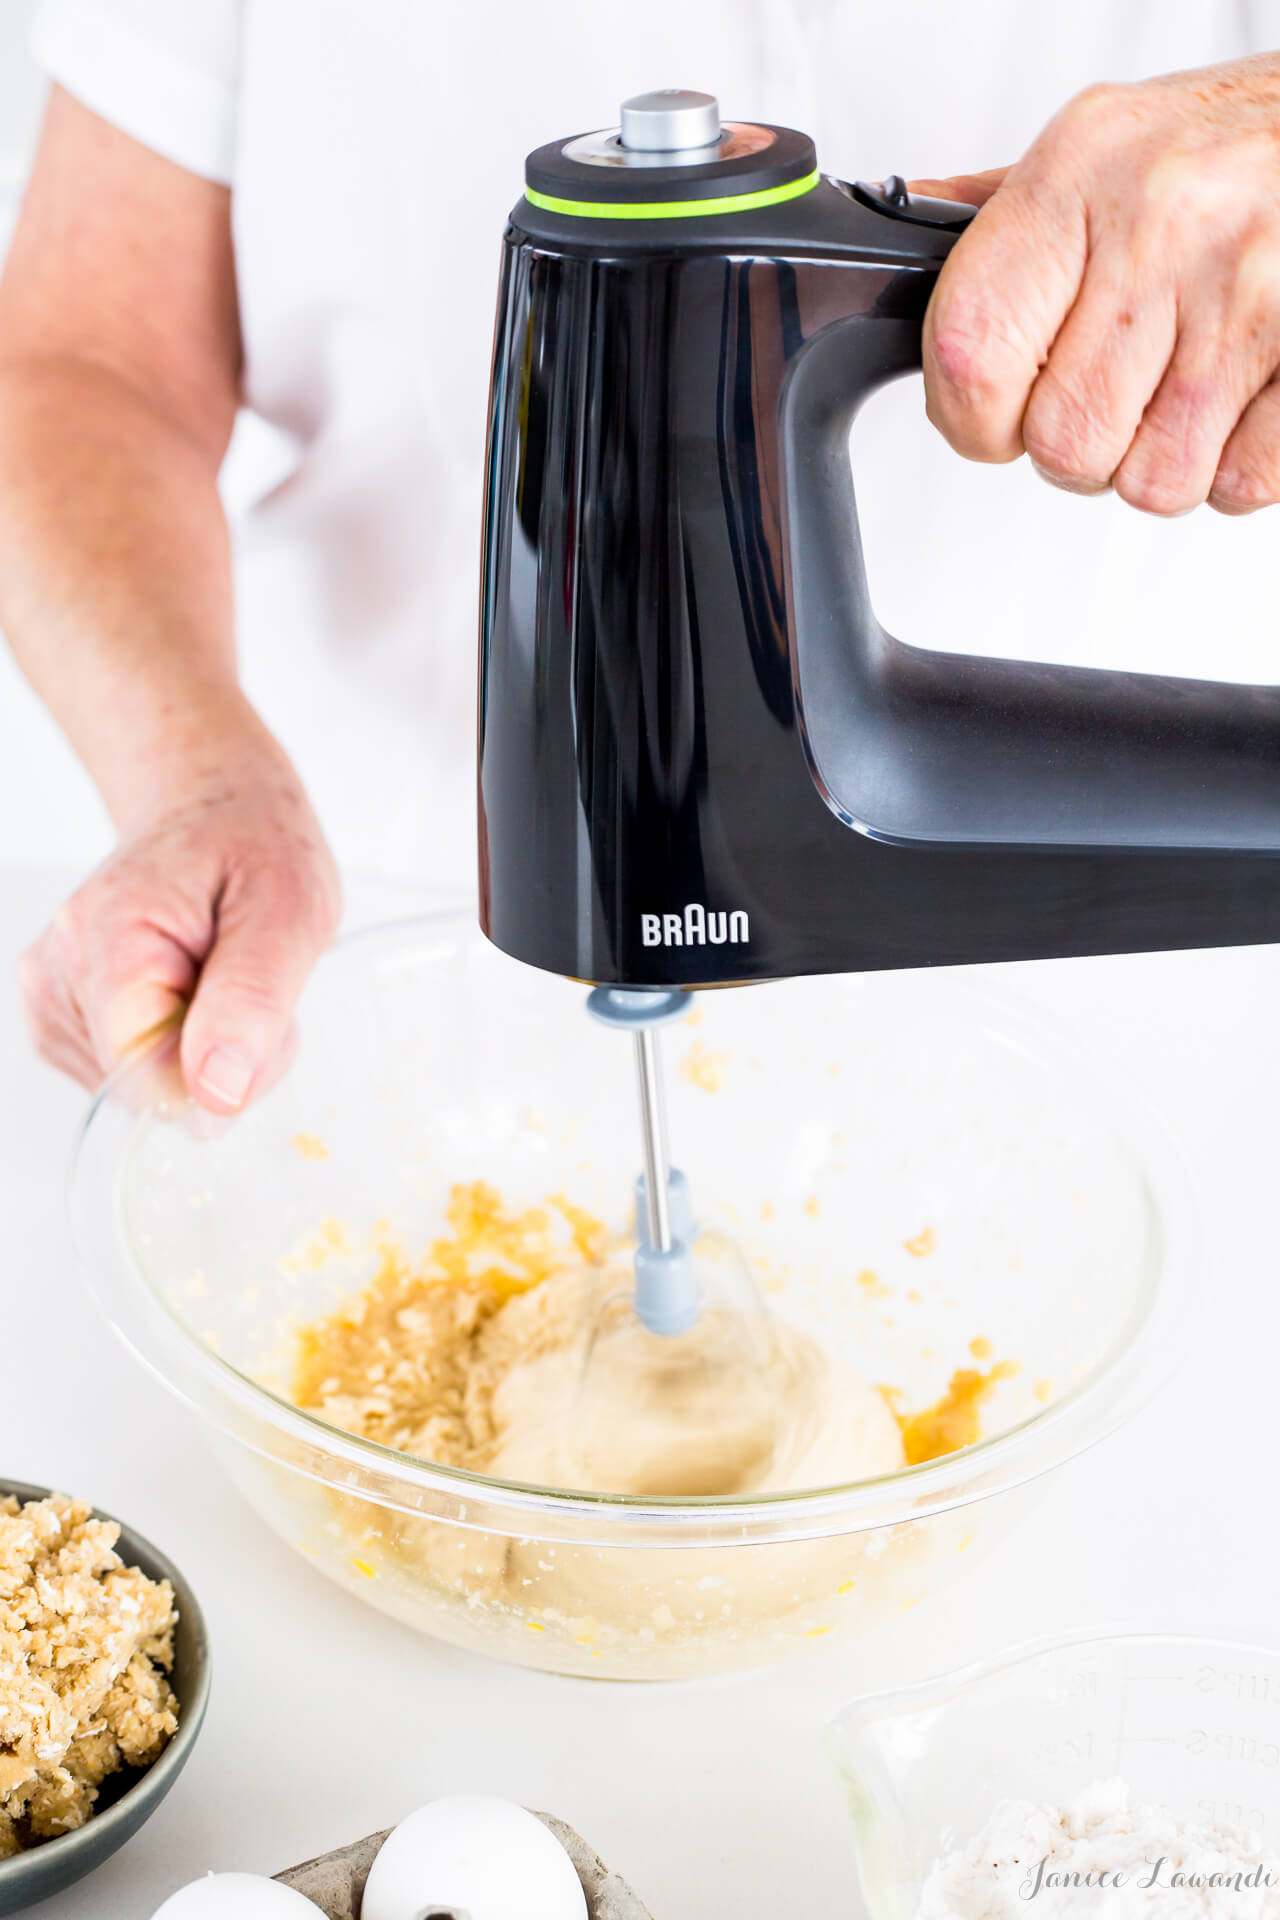 Mixing cake batter with a hand mixer—Alternating wet and dry ingredients to make cake